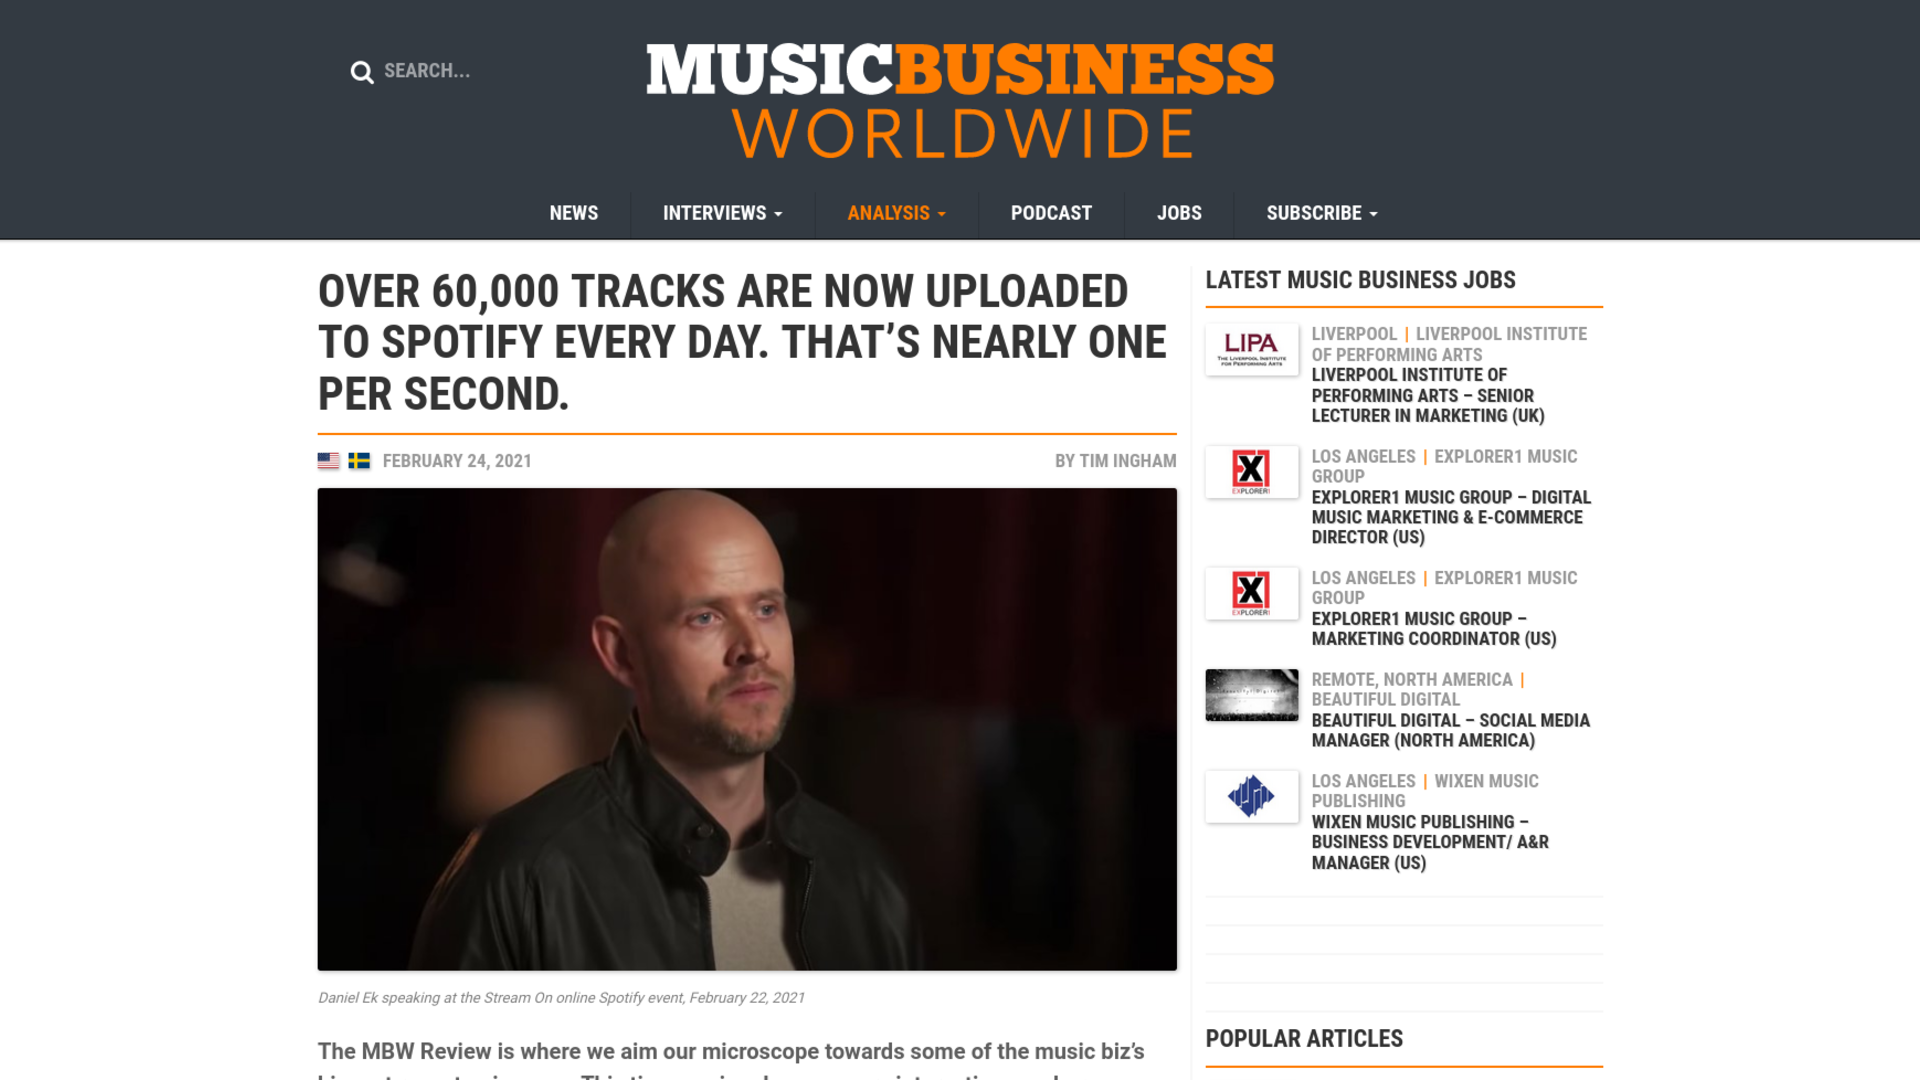 Fairness Rocks News OVER 60,000 TRACKS ARE NOW UPLOADED TO SPOTIFY EVERY DAY. THAT'S NEARLY ONE PER SECOND.